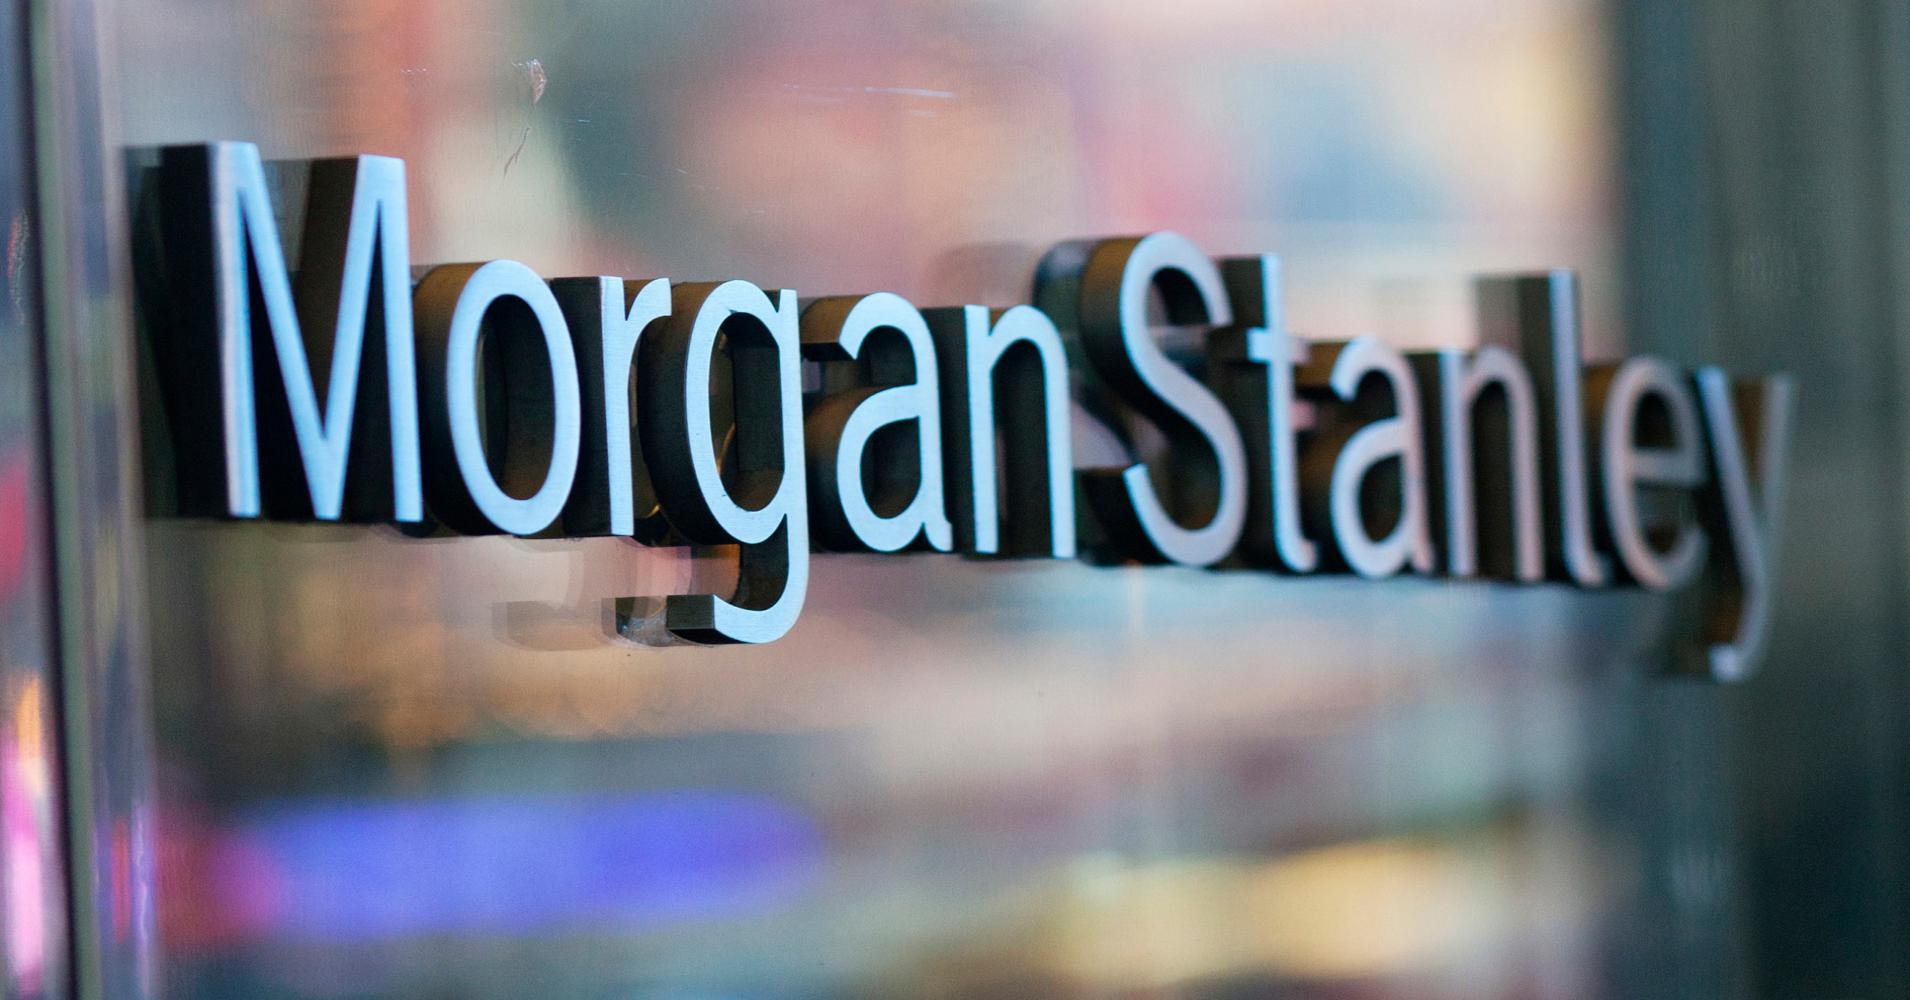 Morgan Stanley (NYSE:MS)'s Head of Real Estate & Merchant Banking To Leave The Bank